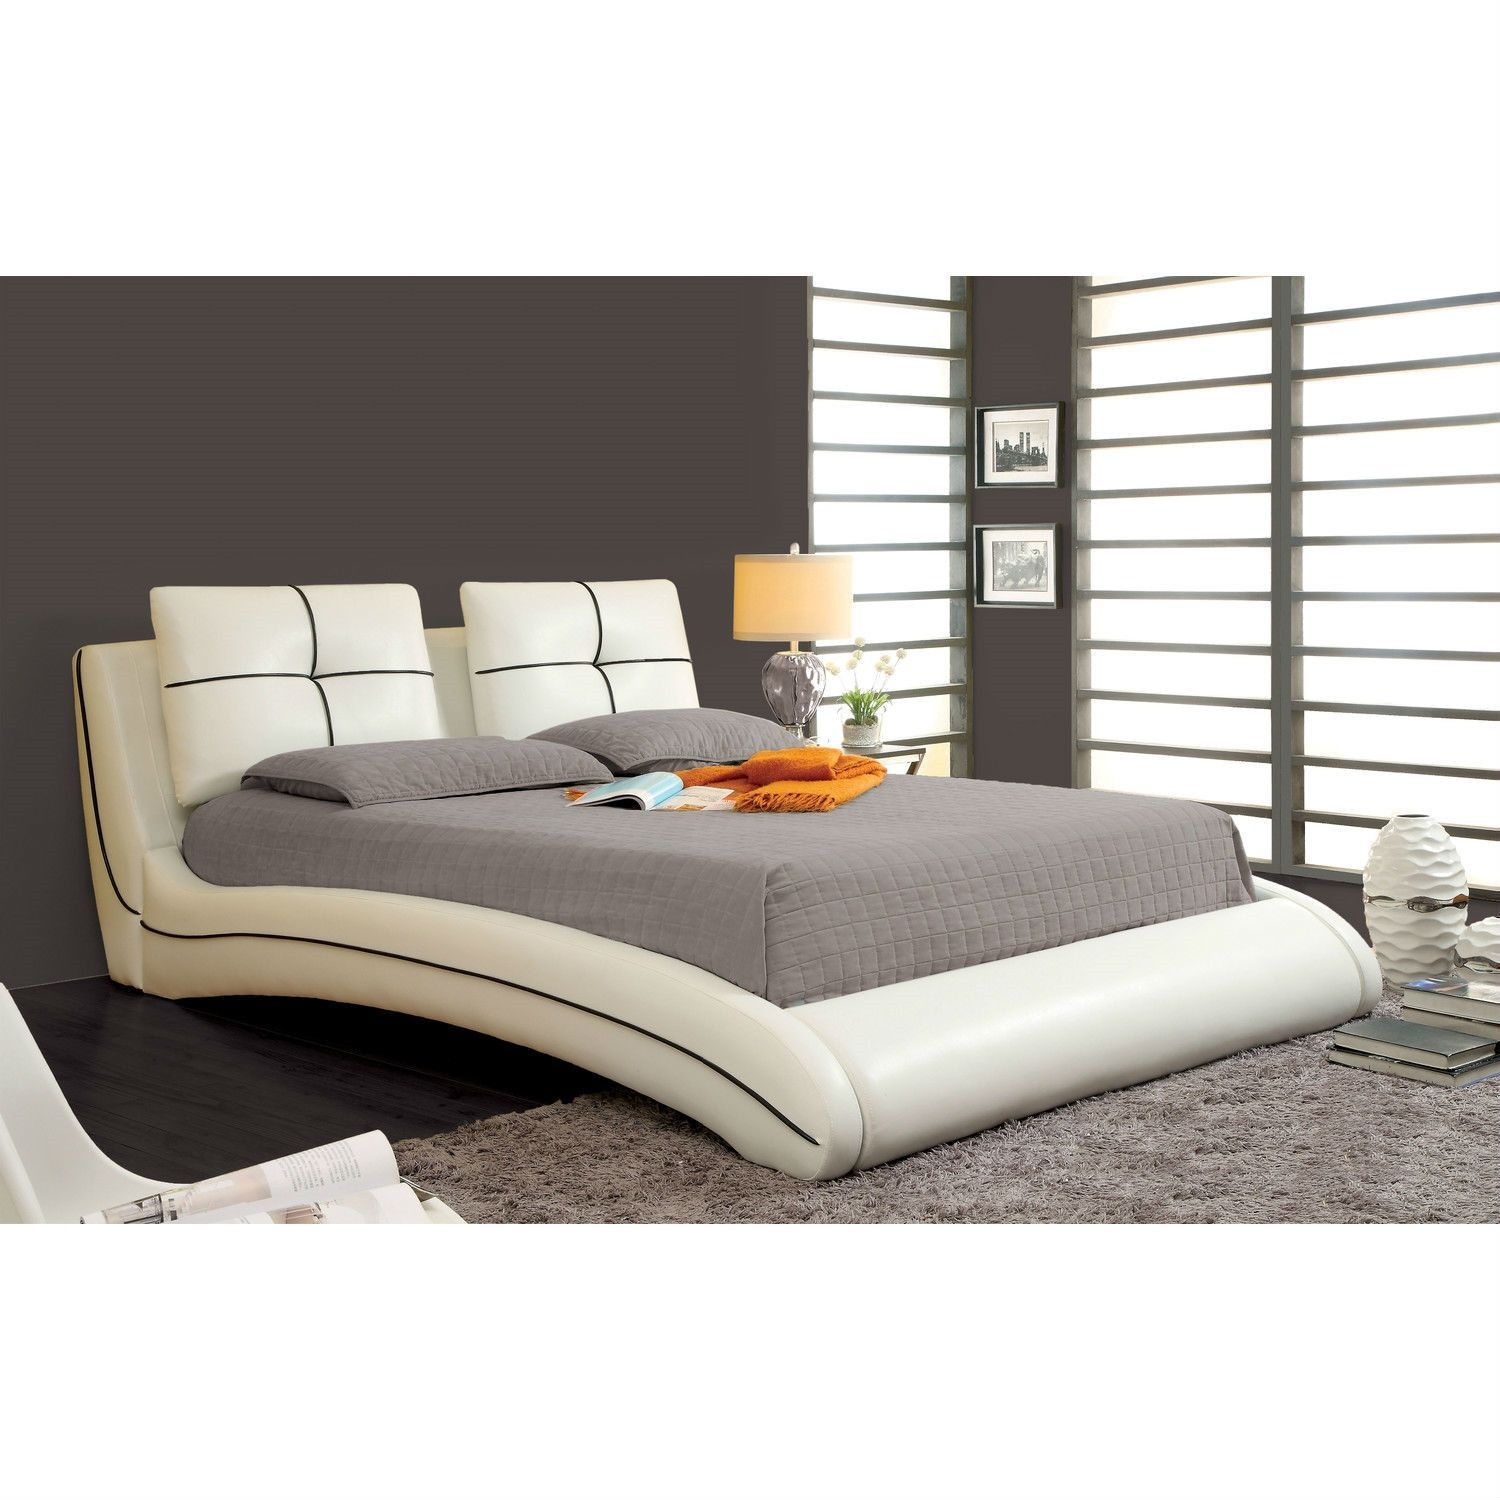 Queen size Modern Curved Upholstered Bed With Padded Headboard in ...